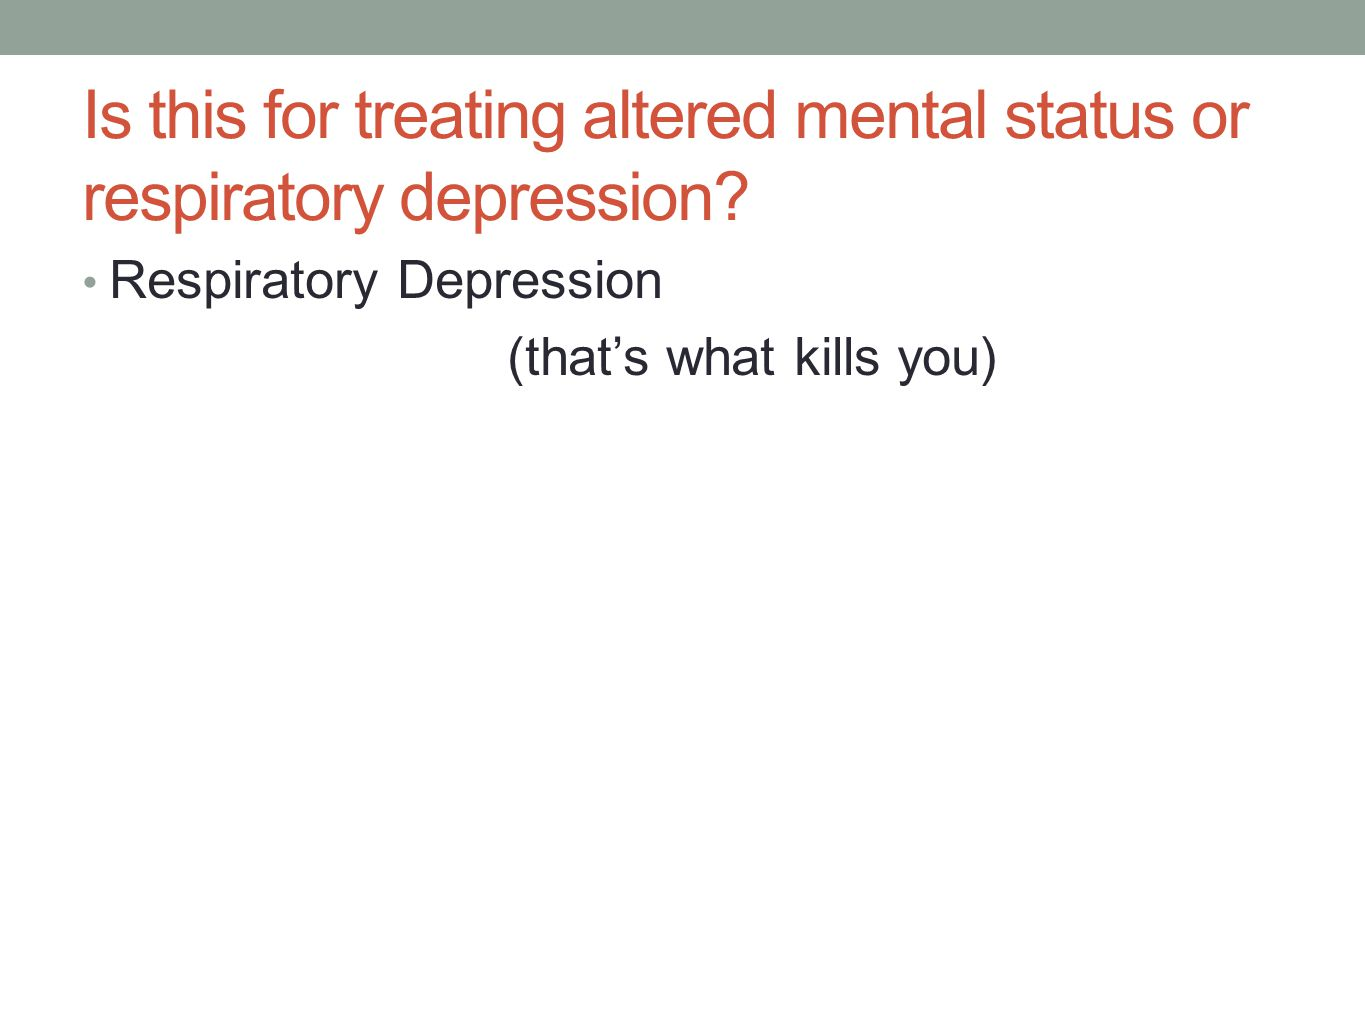 Is this for treating altered mental status or respiratory depression